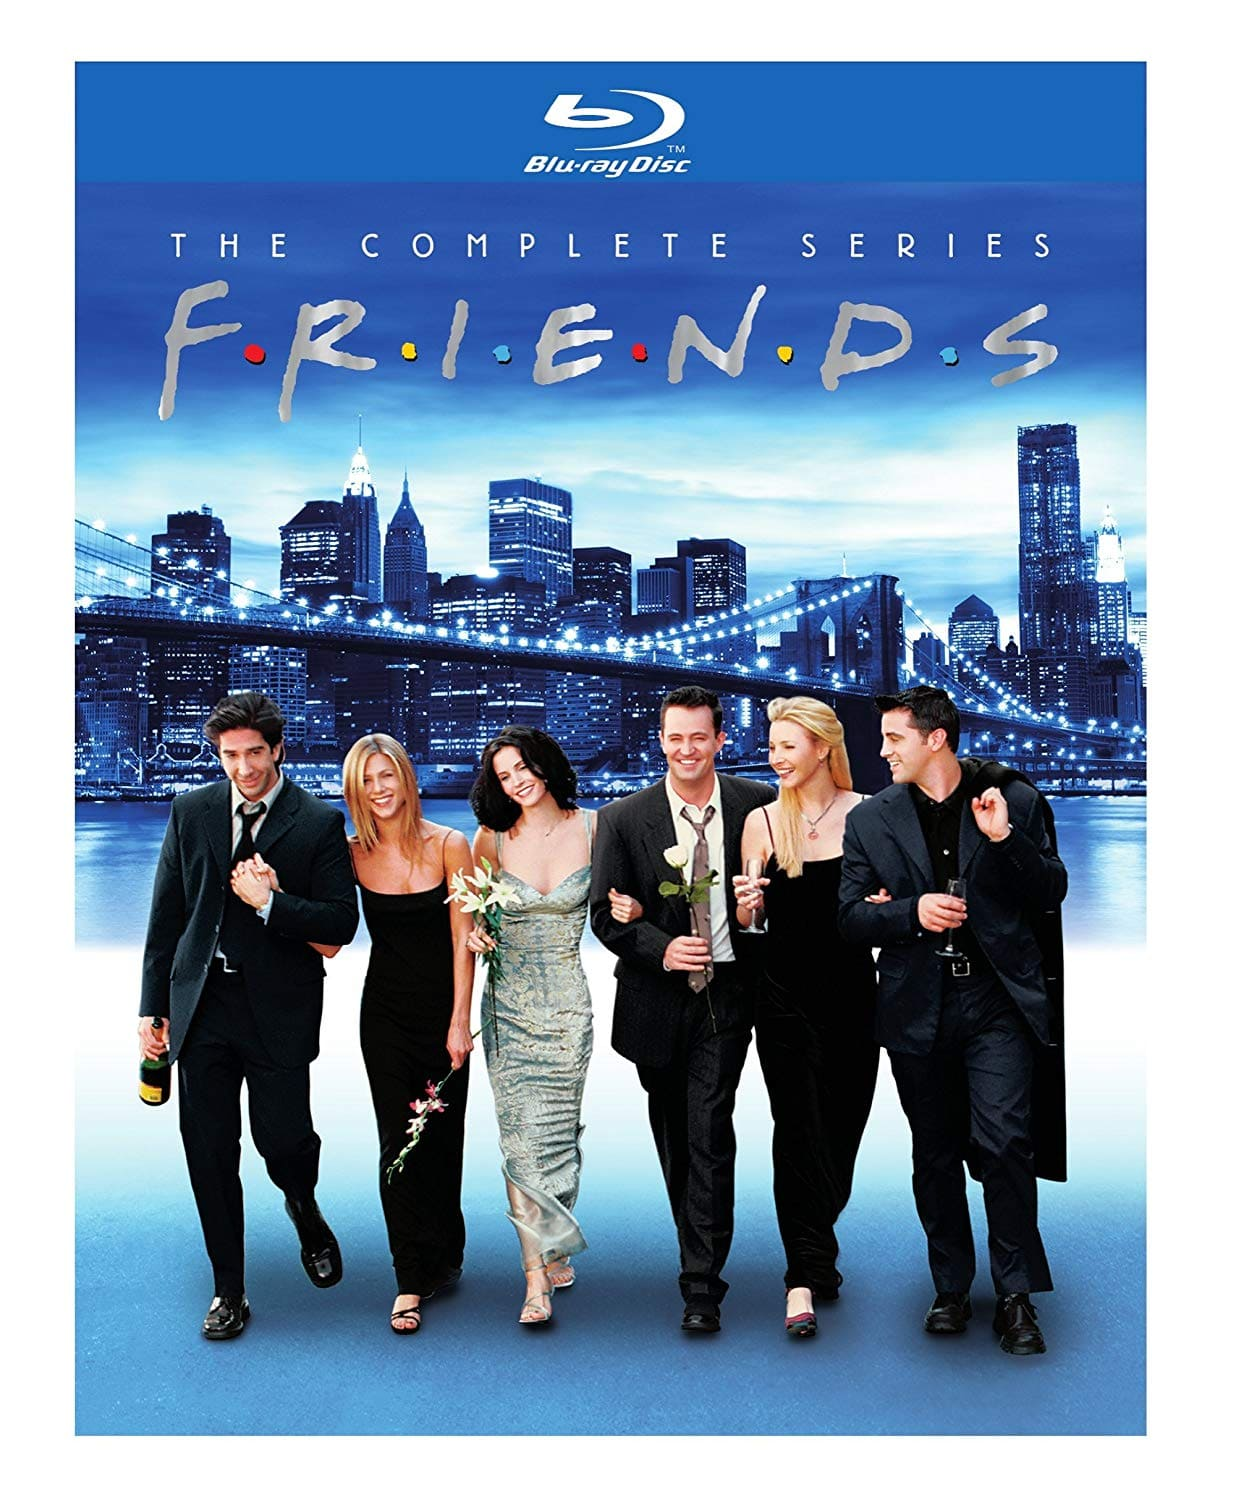 Friends the Complete Series bluray Amazon Repackaged $59.99 plus tax